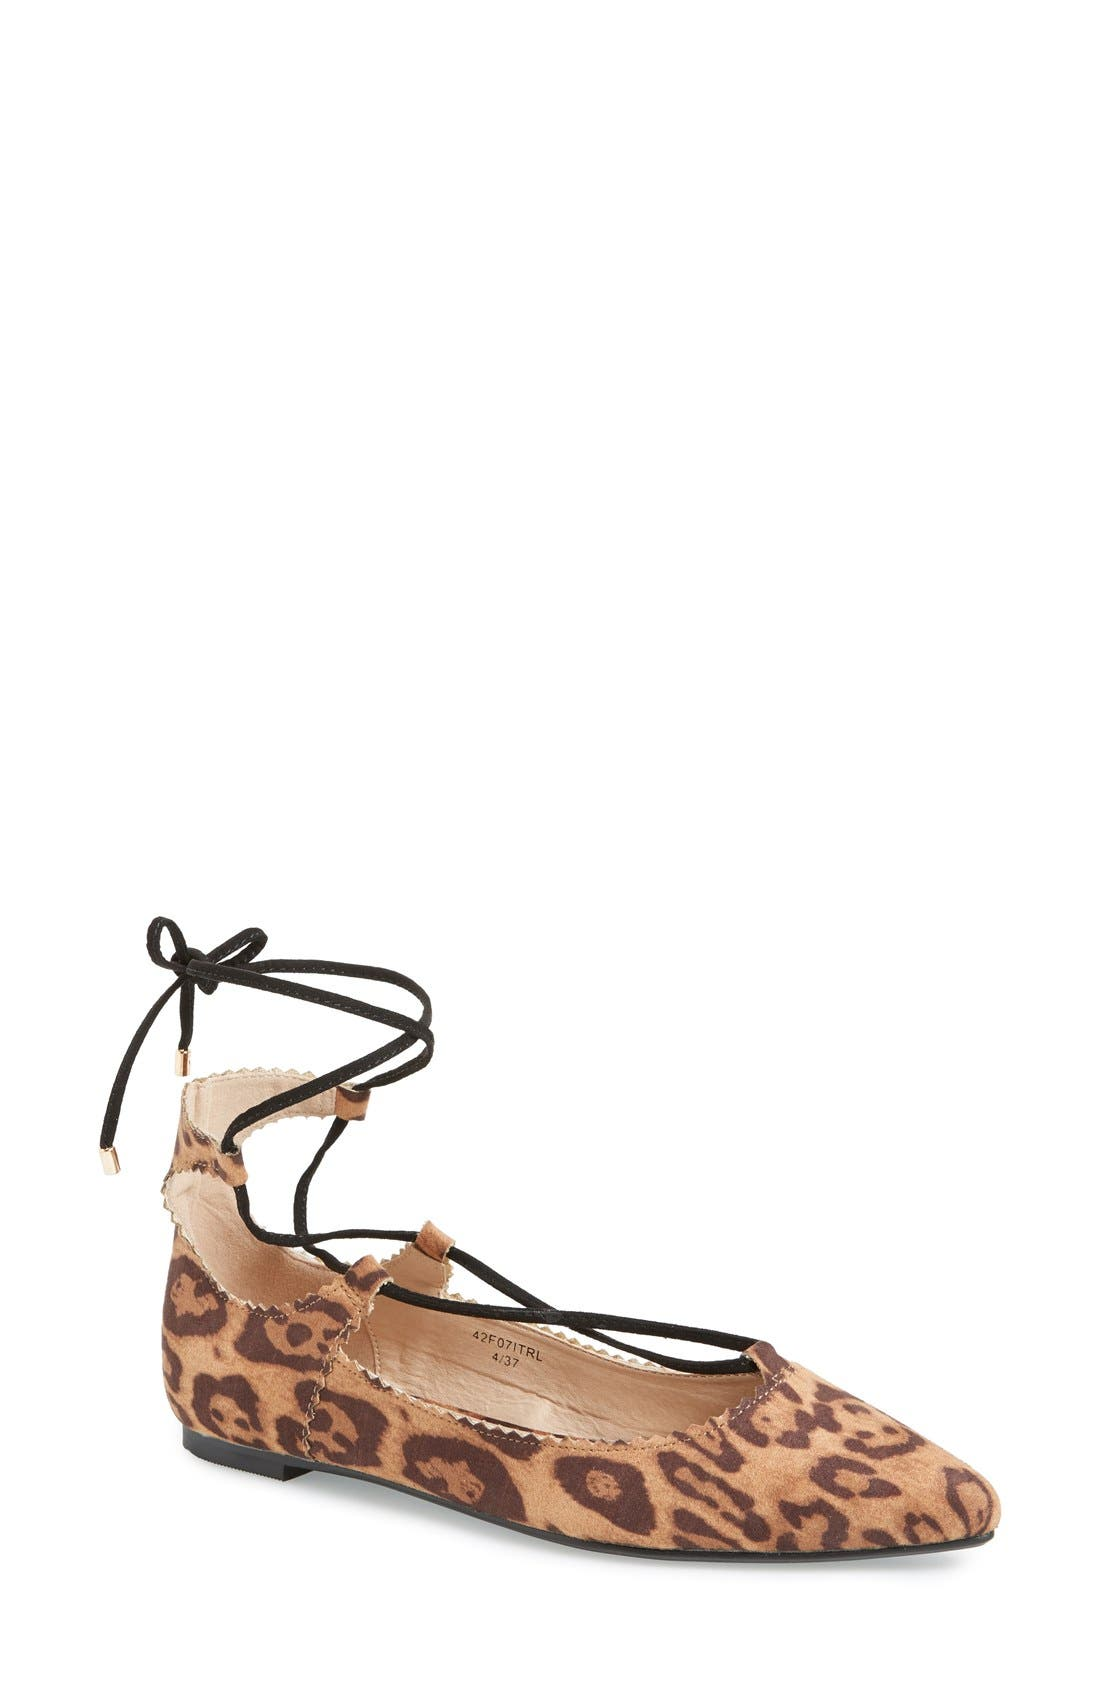 Alternate Image 1 Selected - Topshop 'Finest' Pointy Toe Ghillie Flat (Women)